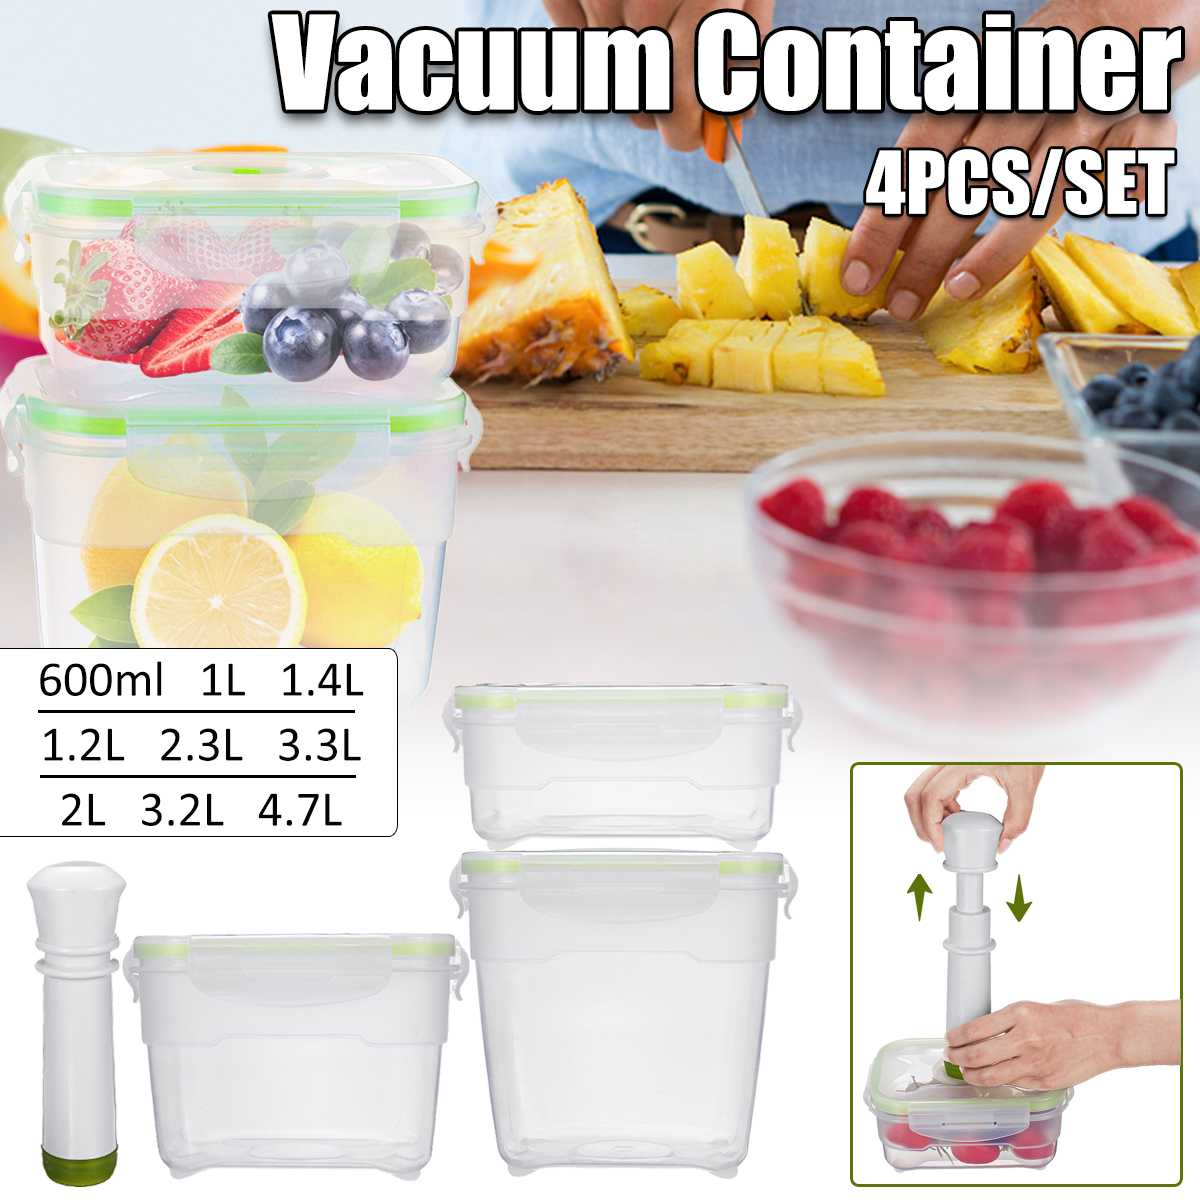 4Pcs Vacuum Containers Fresh Can Damp Proof Tea Pot Food Container Seal Pot Vacuum Sealer Pots With Pump For Seal Foods